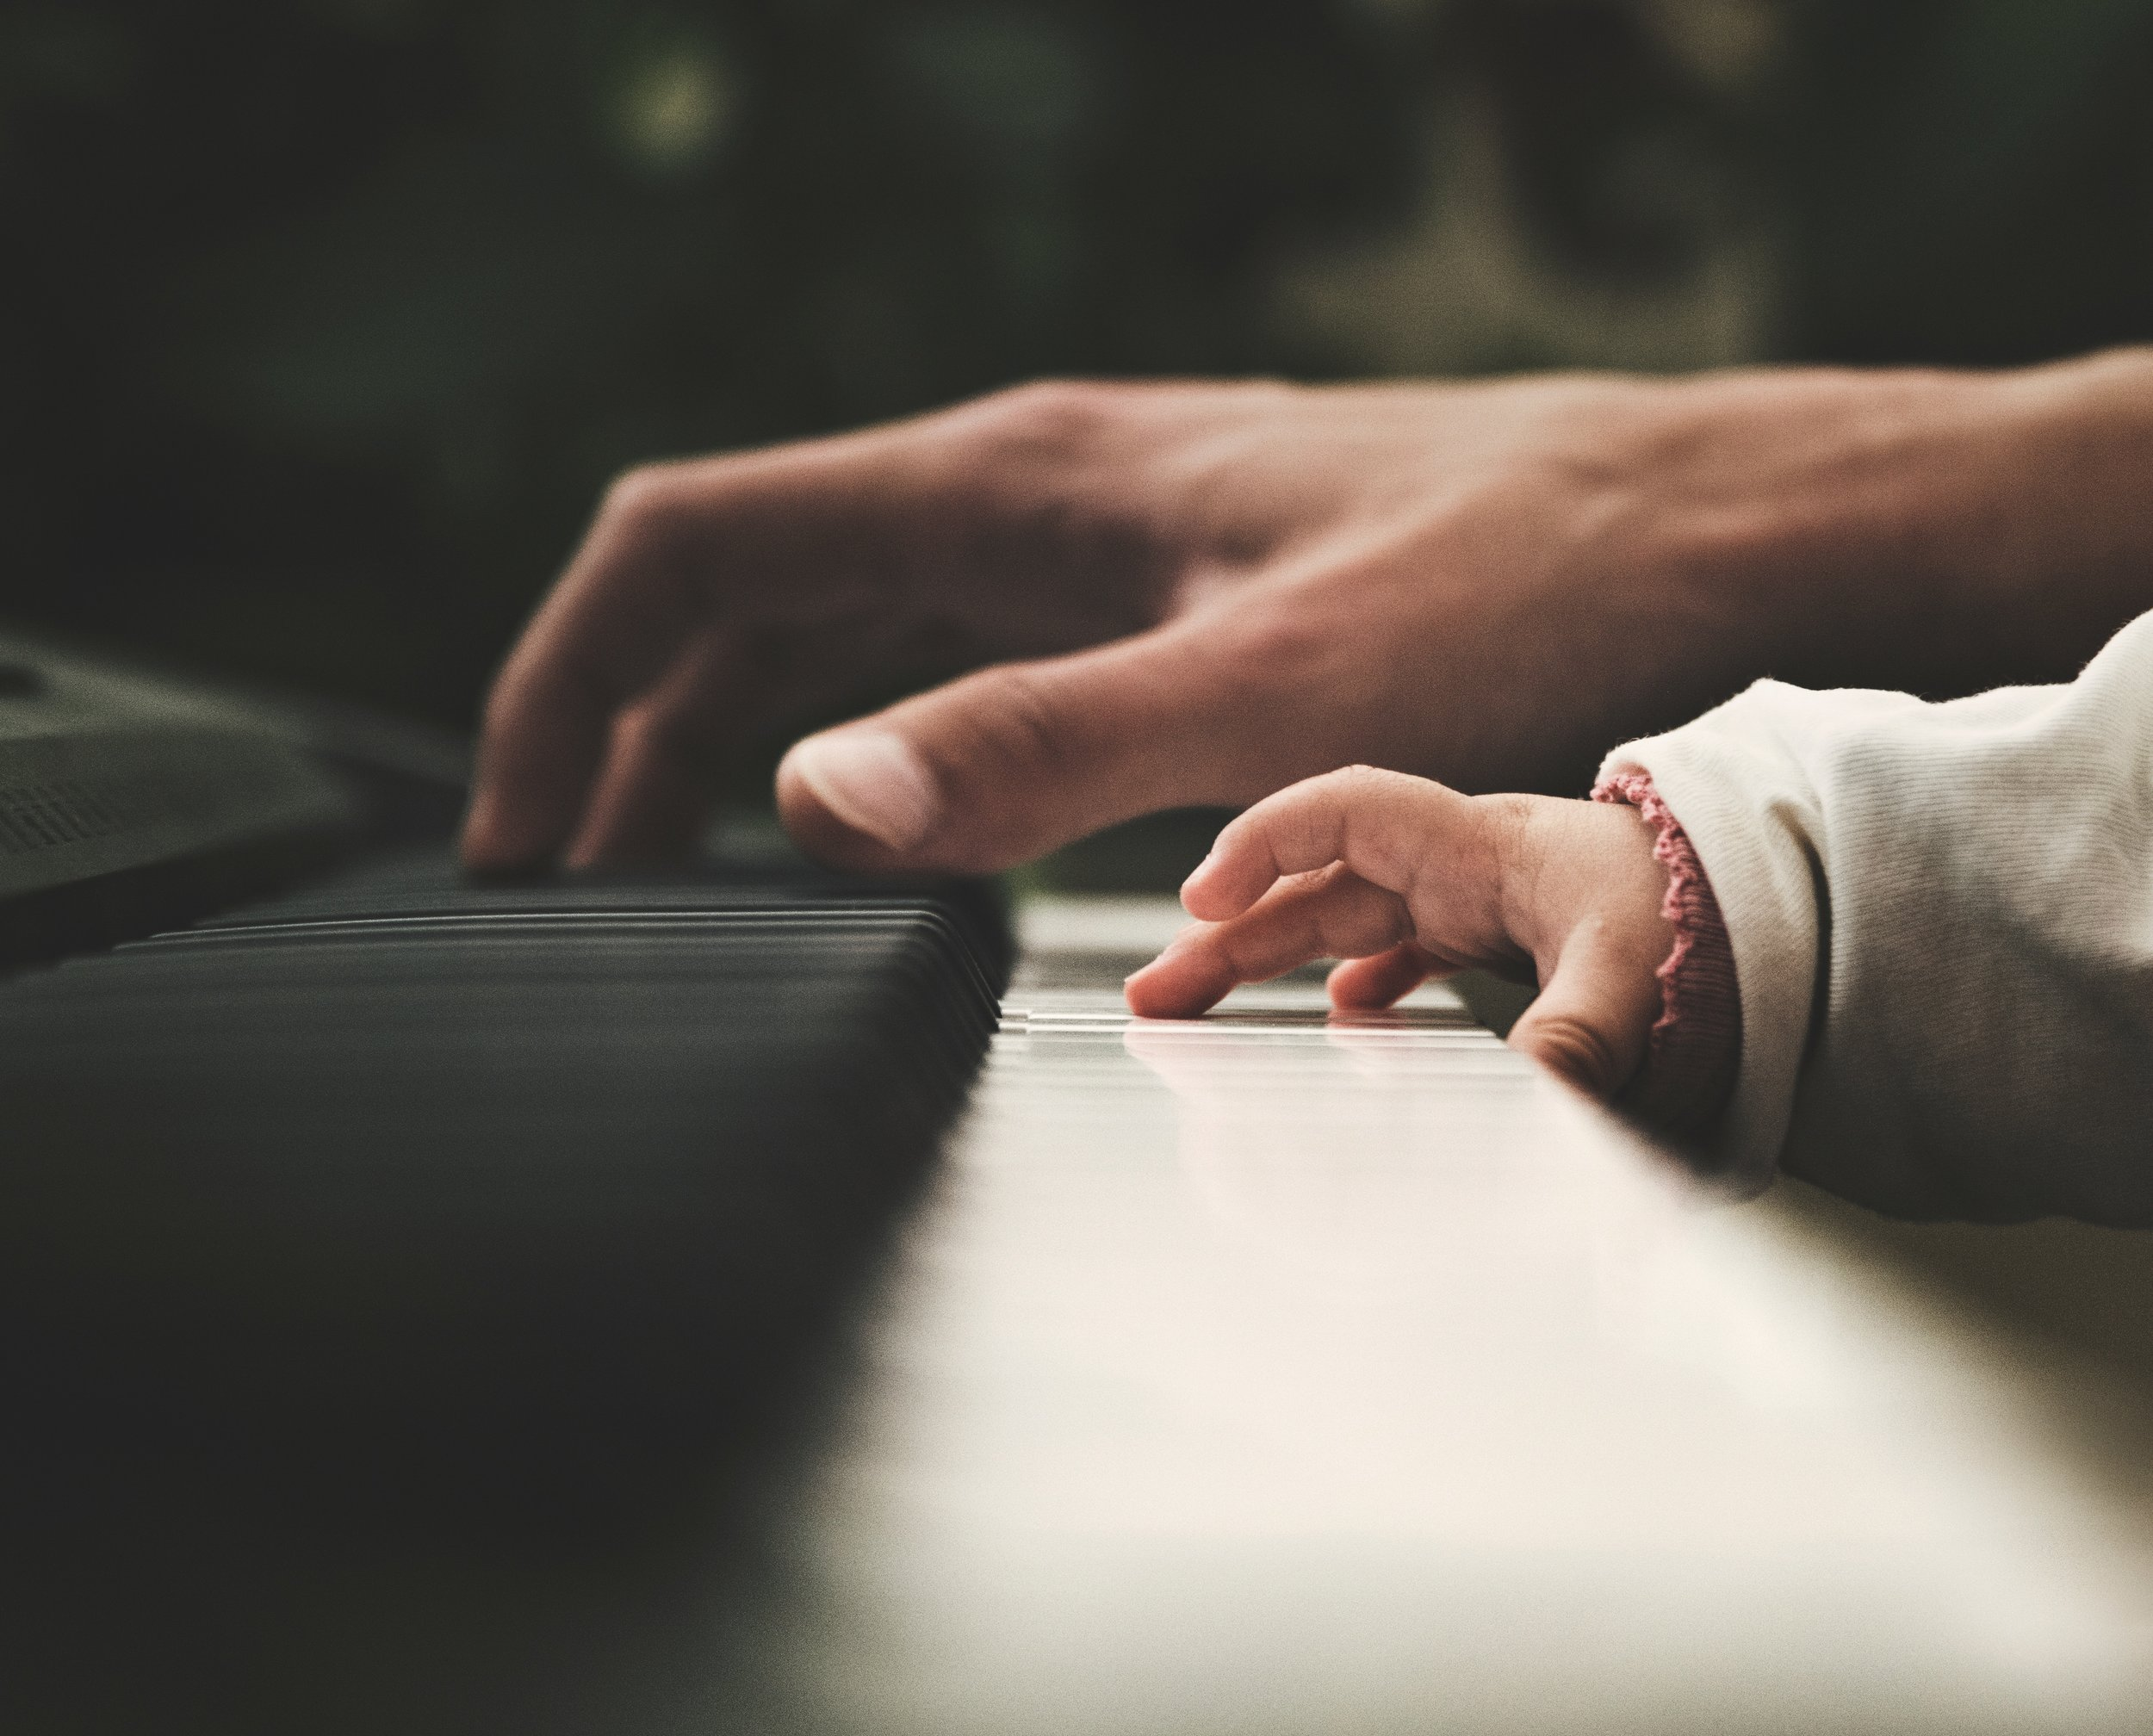 When you learn how to play piano, you have a gift that will last a lifetime.